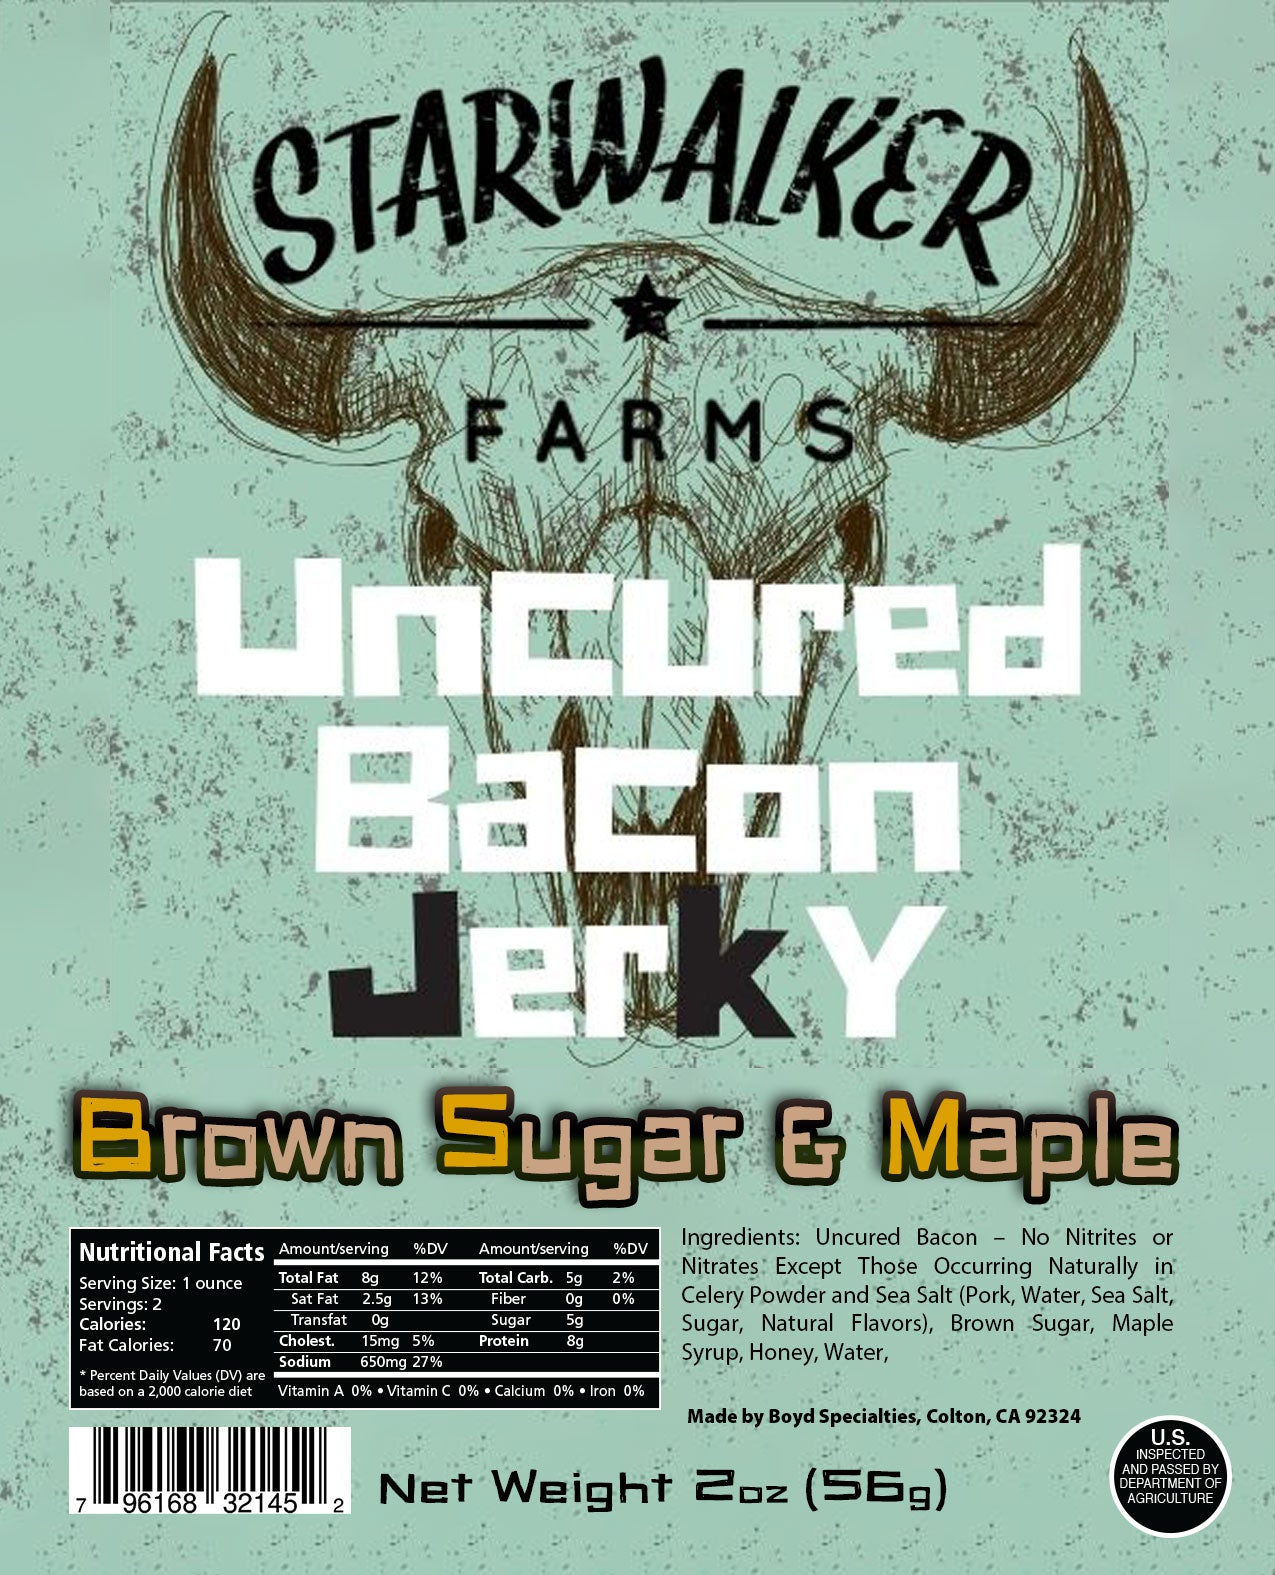 Brown Sugar & Maple BACON Jerky